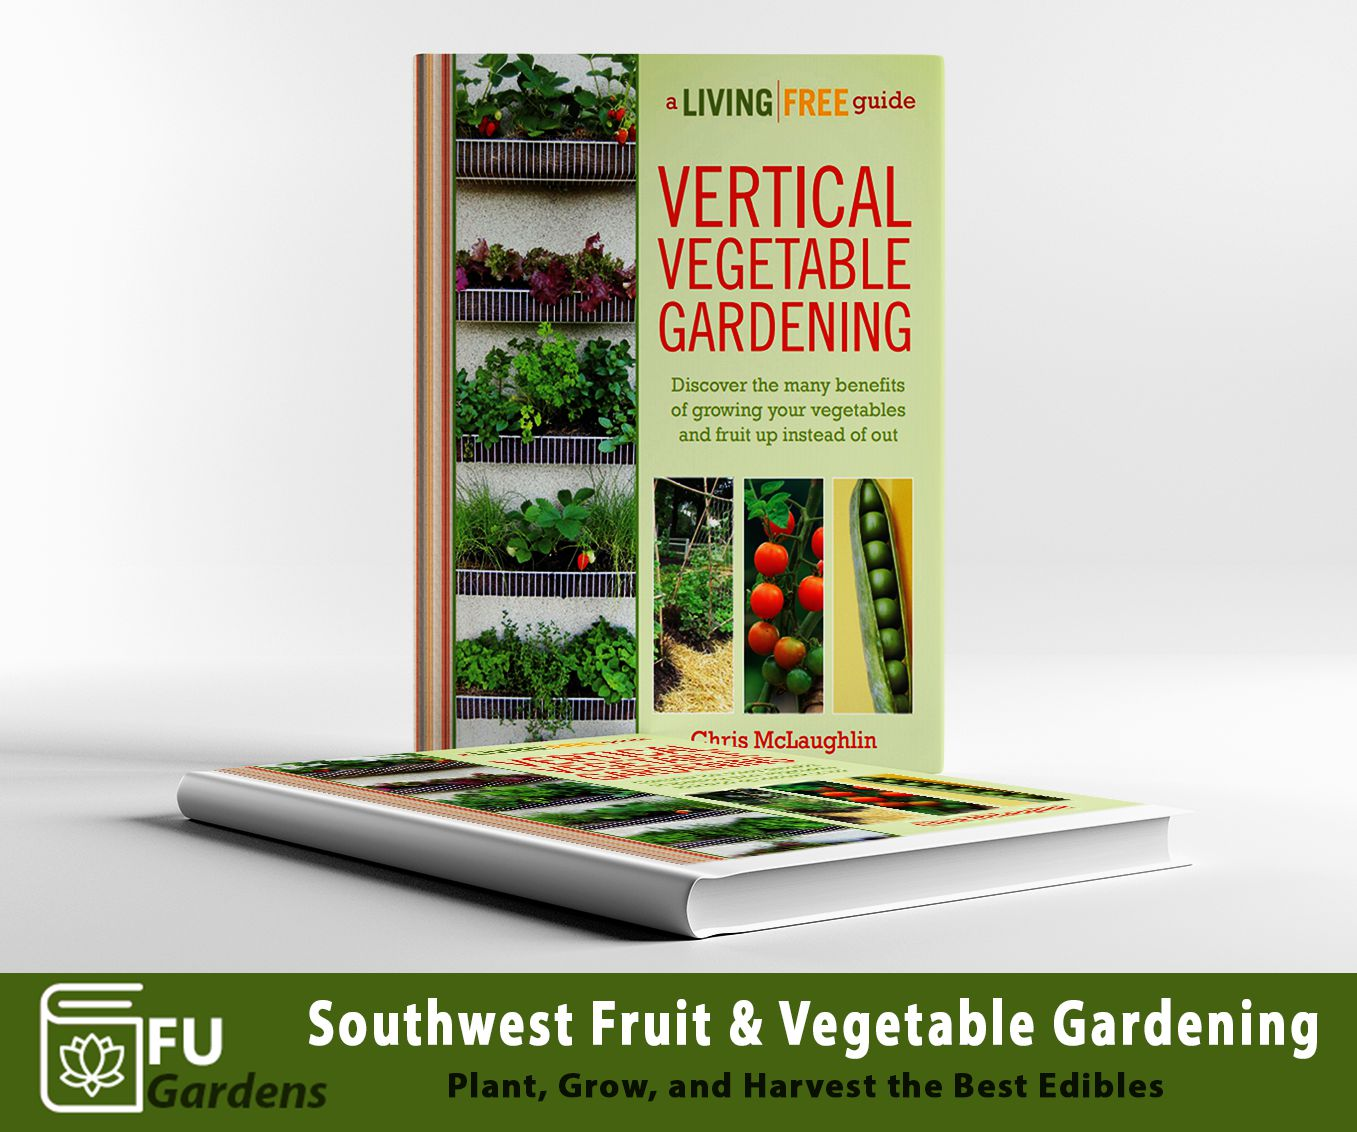 READ BOOK Vertical Vegetable Gardening Discover the Many Benefits of Growing Your Vegetables and Fruit Up Instead of Out by Chris McLaughlin (PDF)